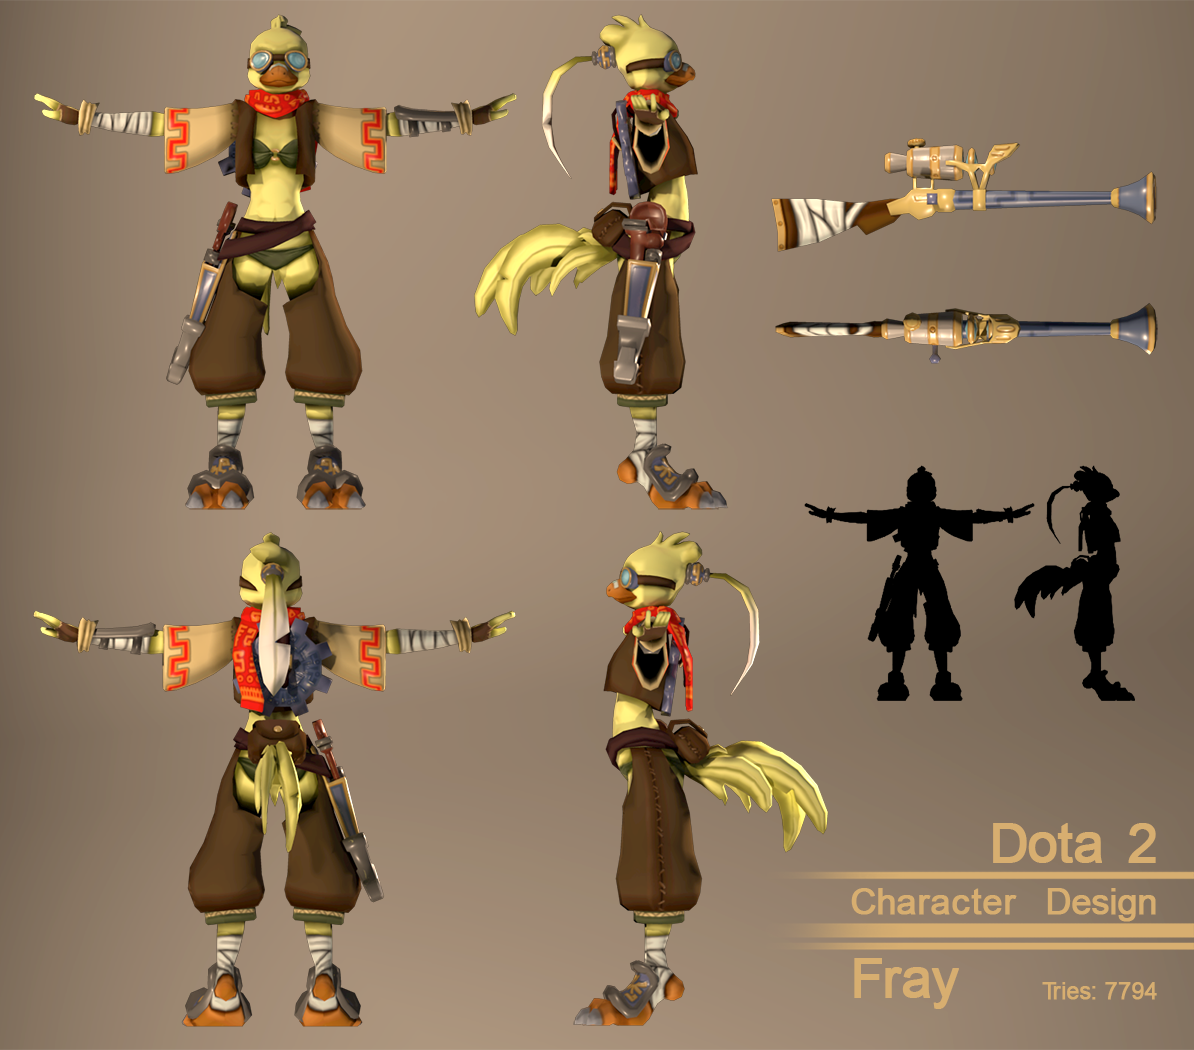 Character Design Download : Dota character design fray — weasyl